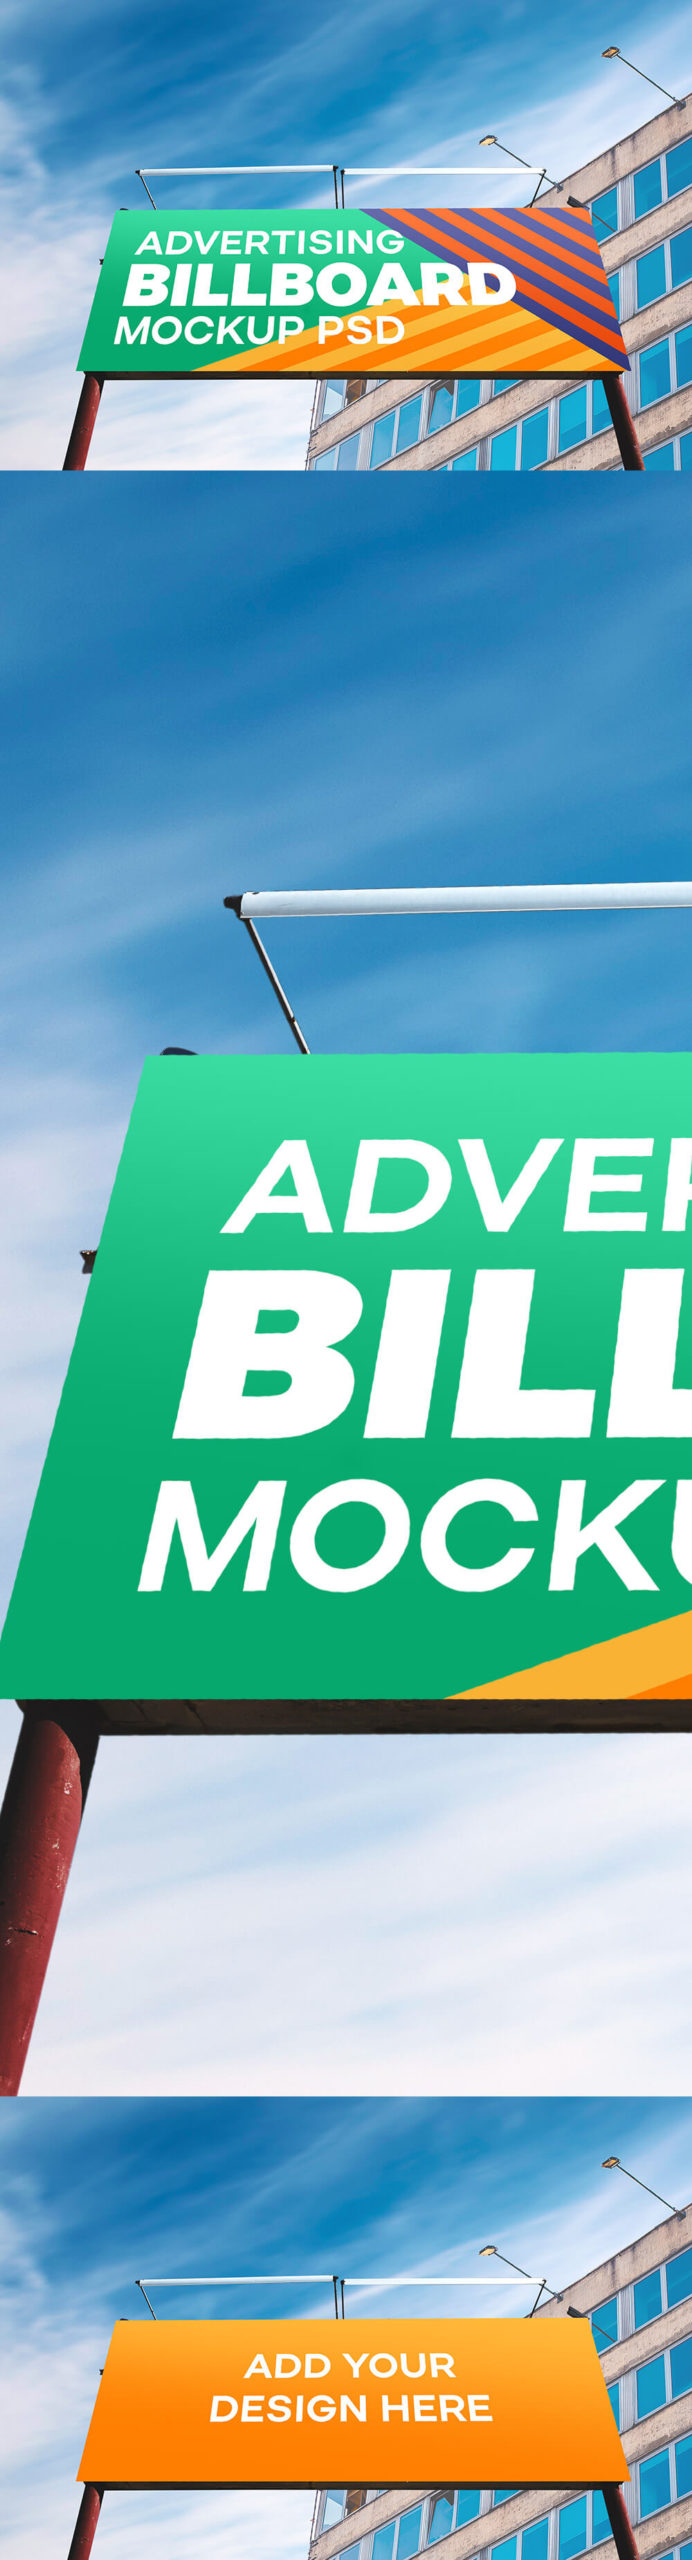 Free Outdoor Advertising Billboard Mockup PSD Template1